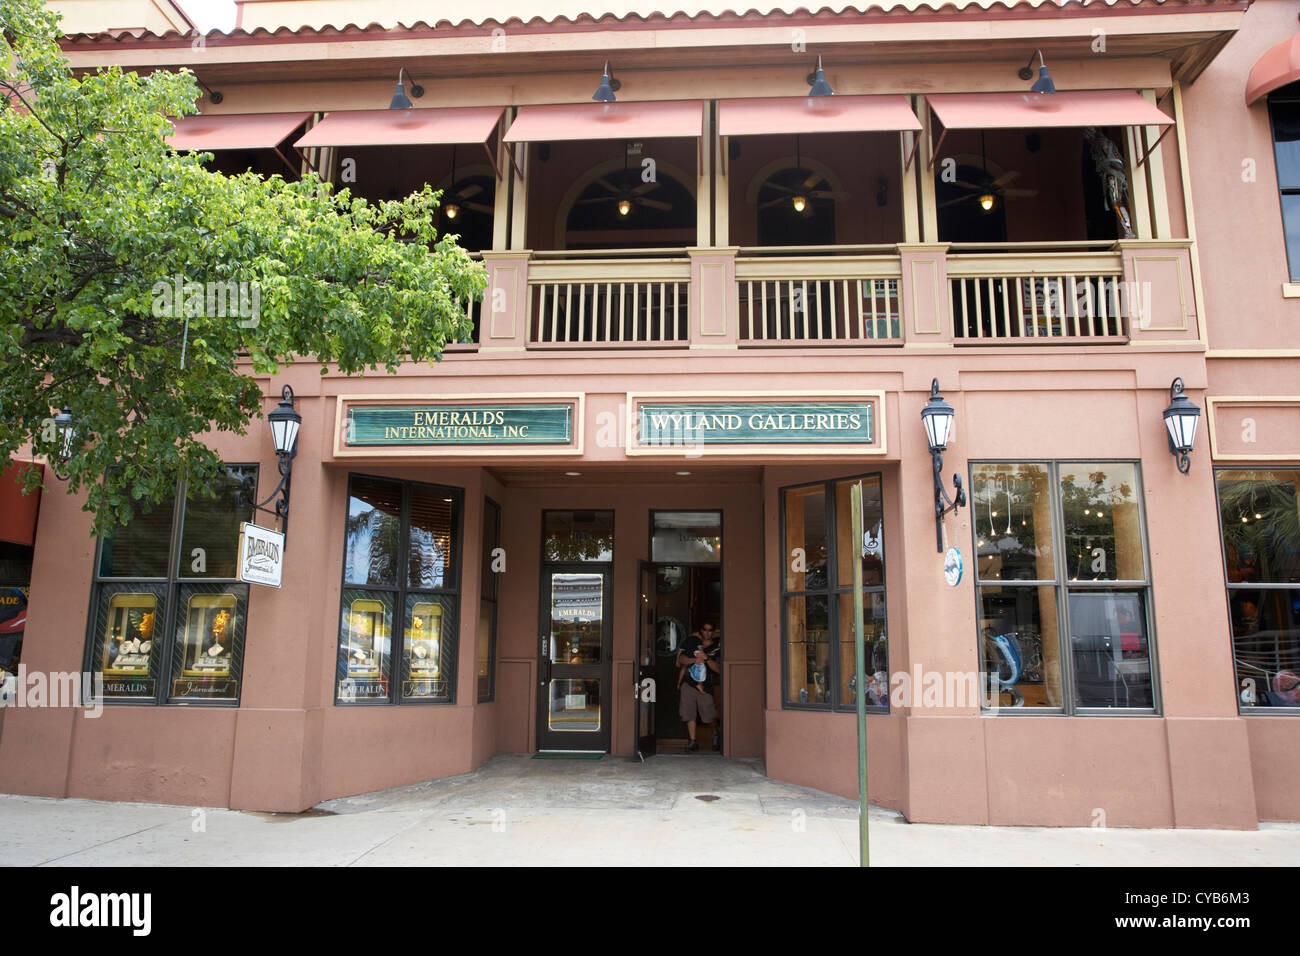 wyland art gallery and emerald store key west florida usa - Stock Image